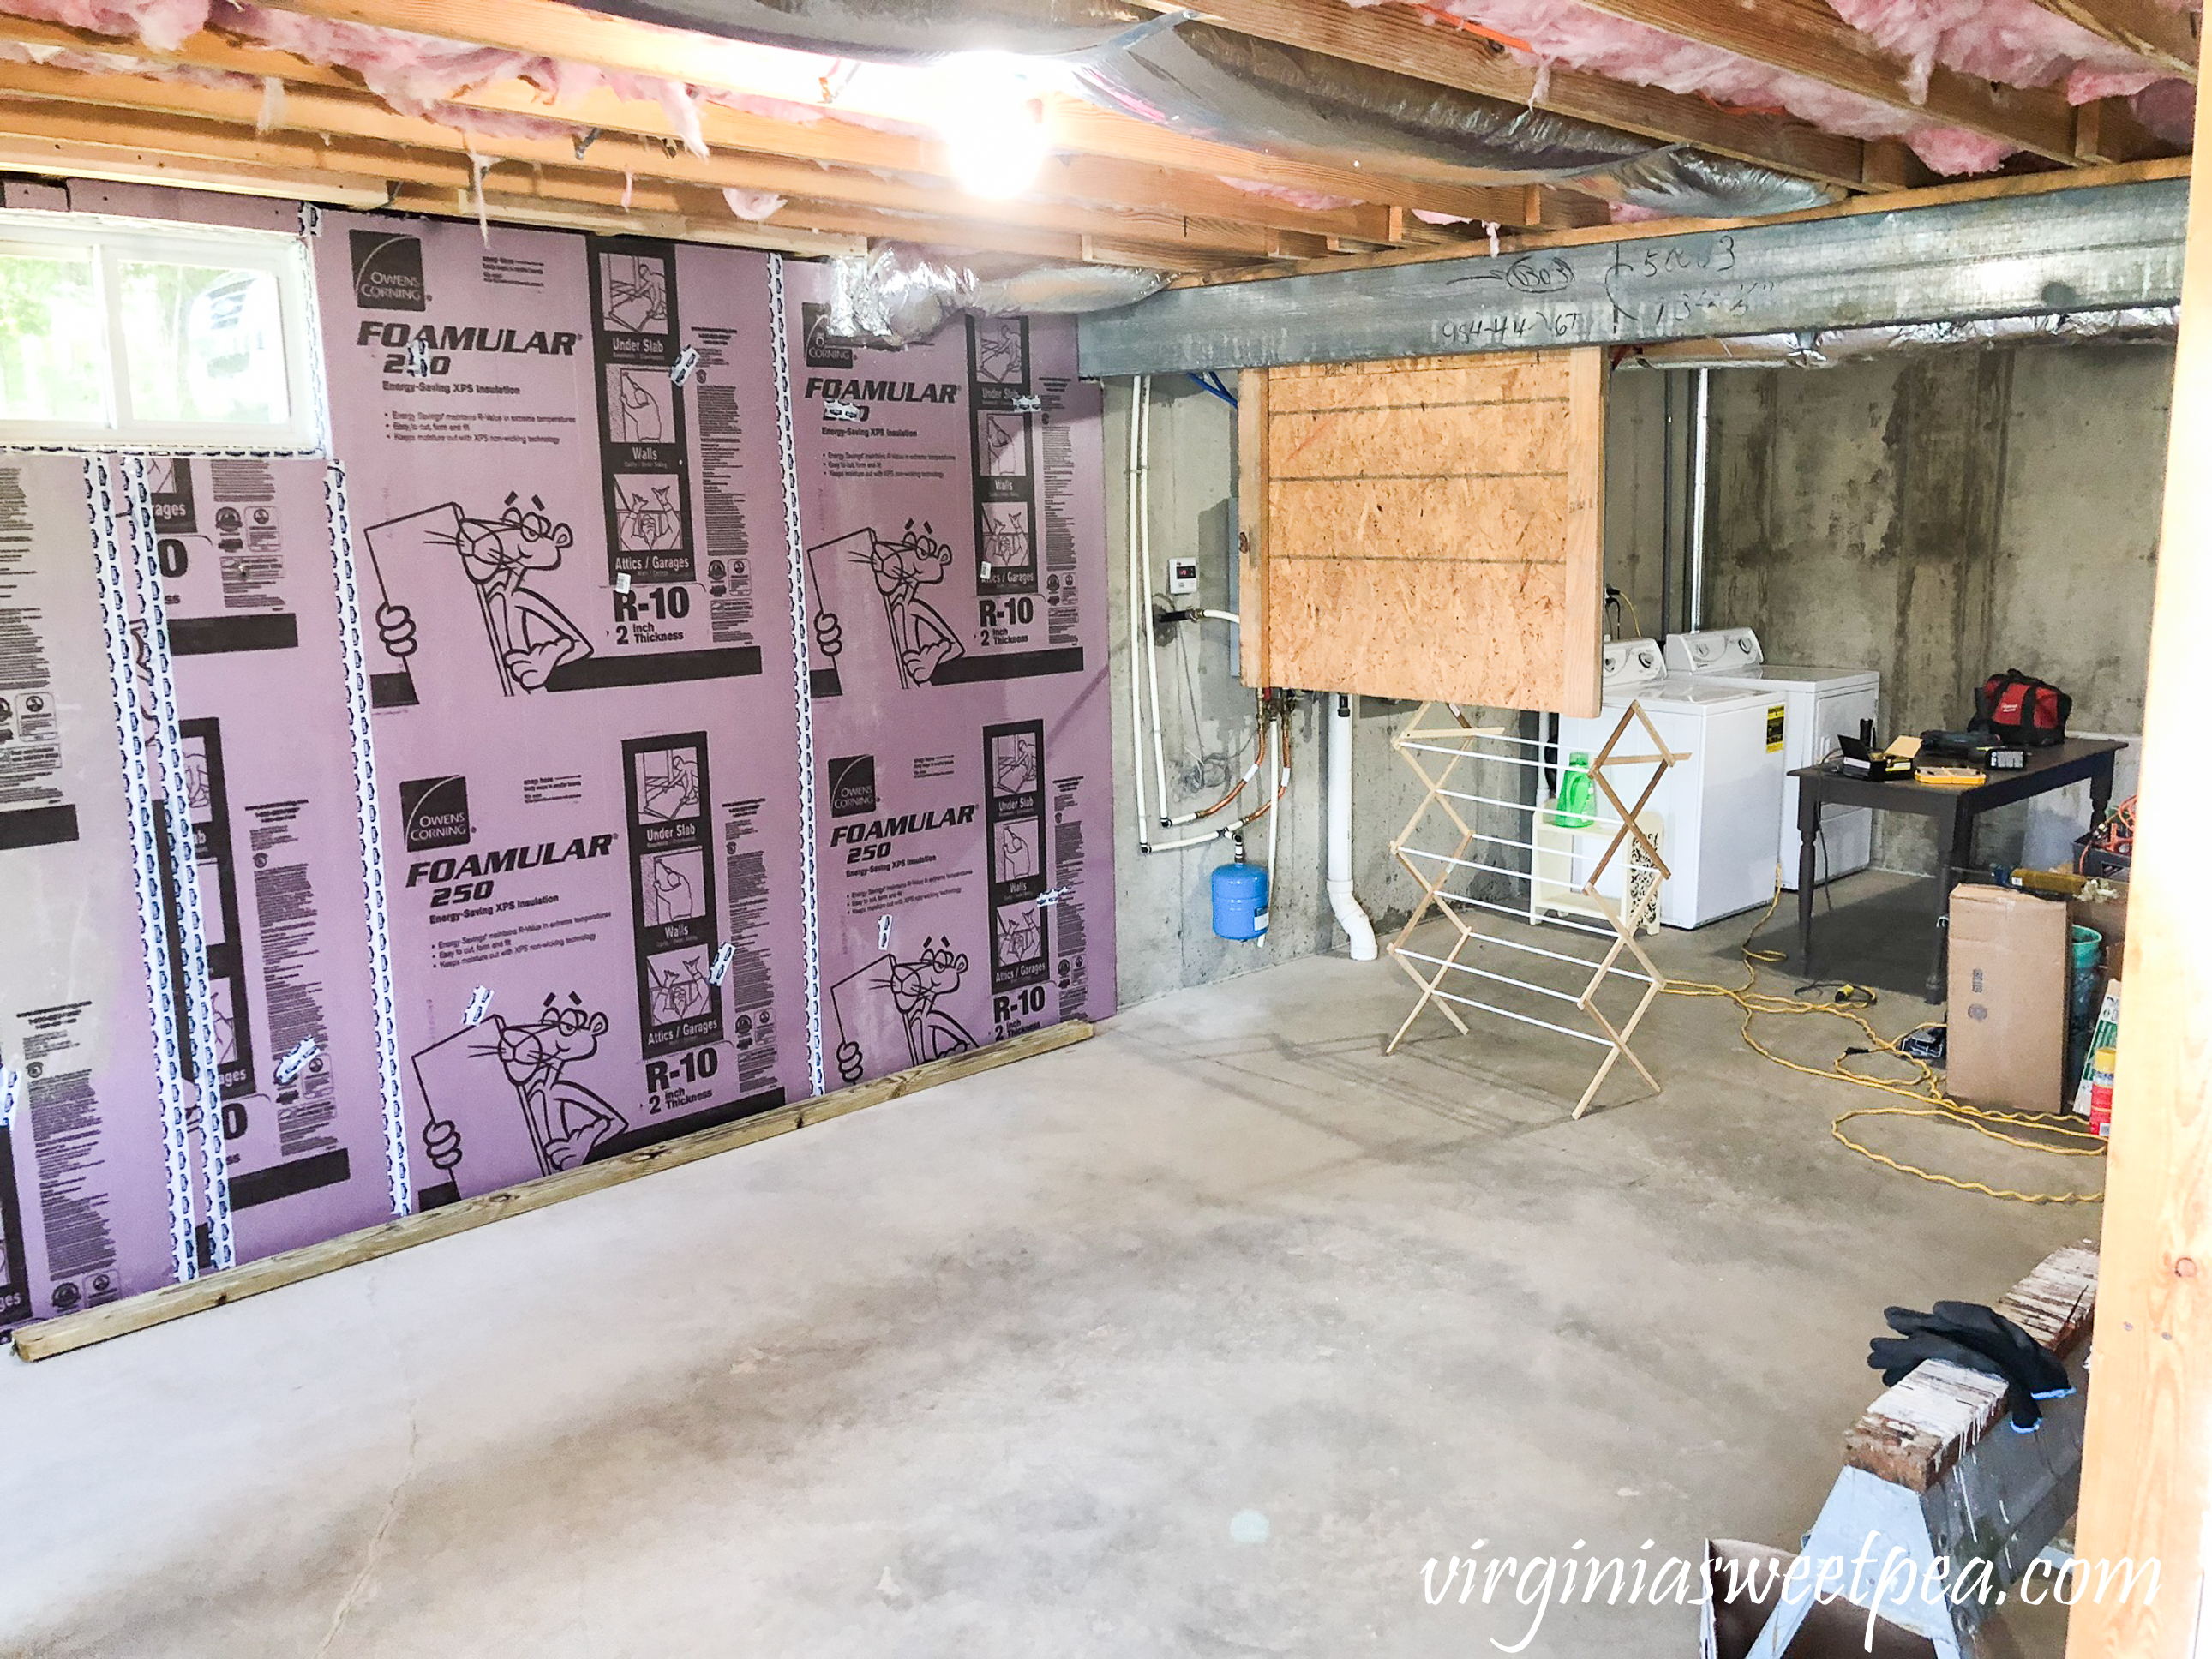 Lake House Basement Project - Adding insulation